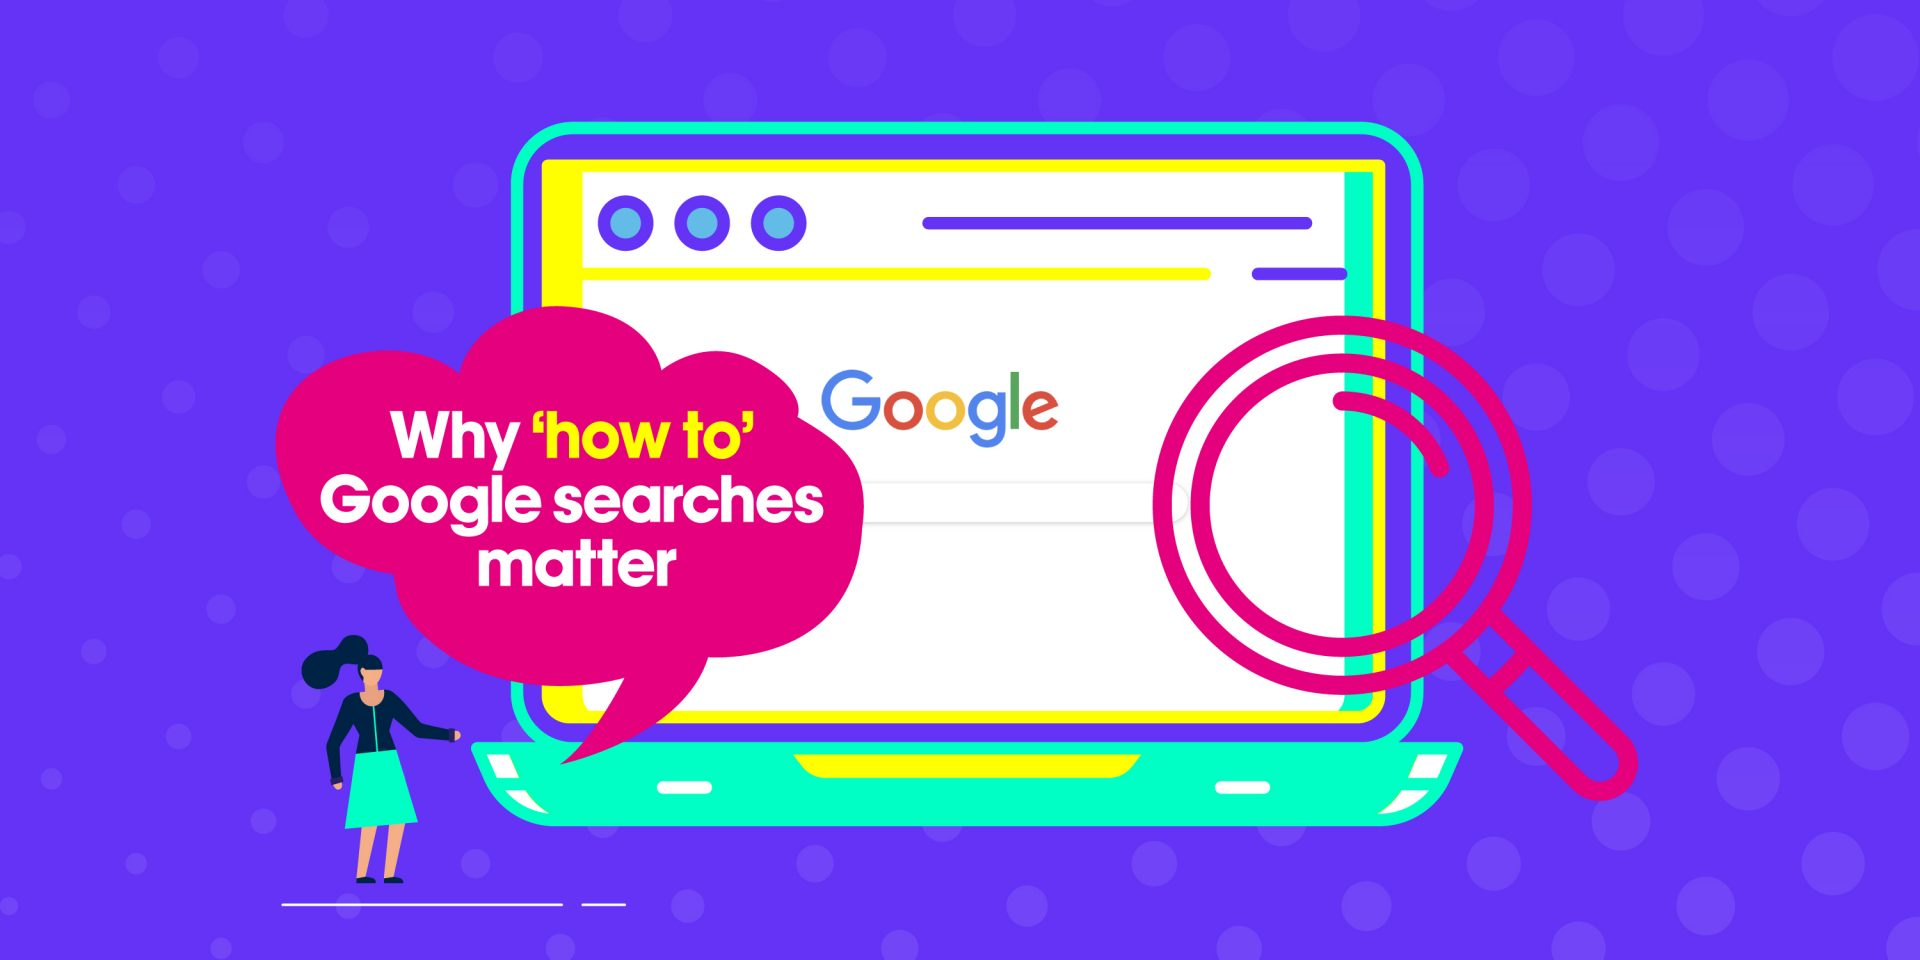 Why 'how to' Google searches matter image